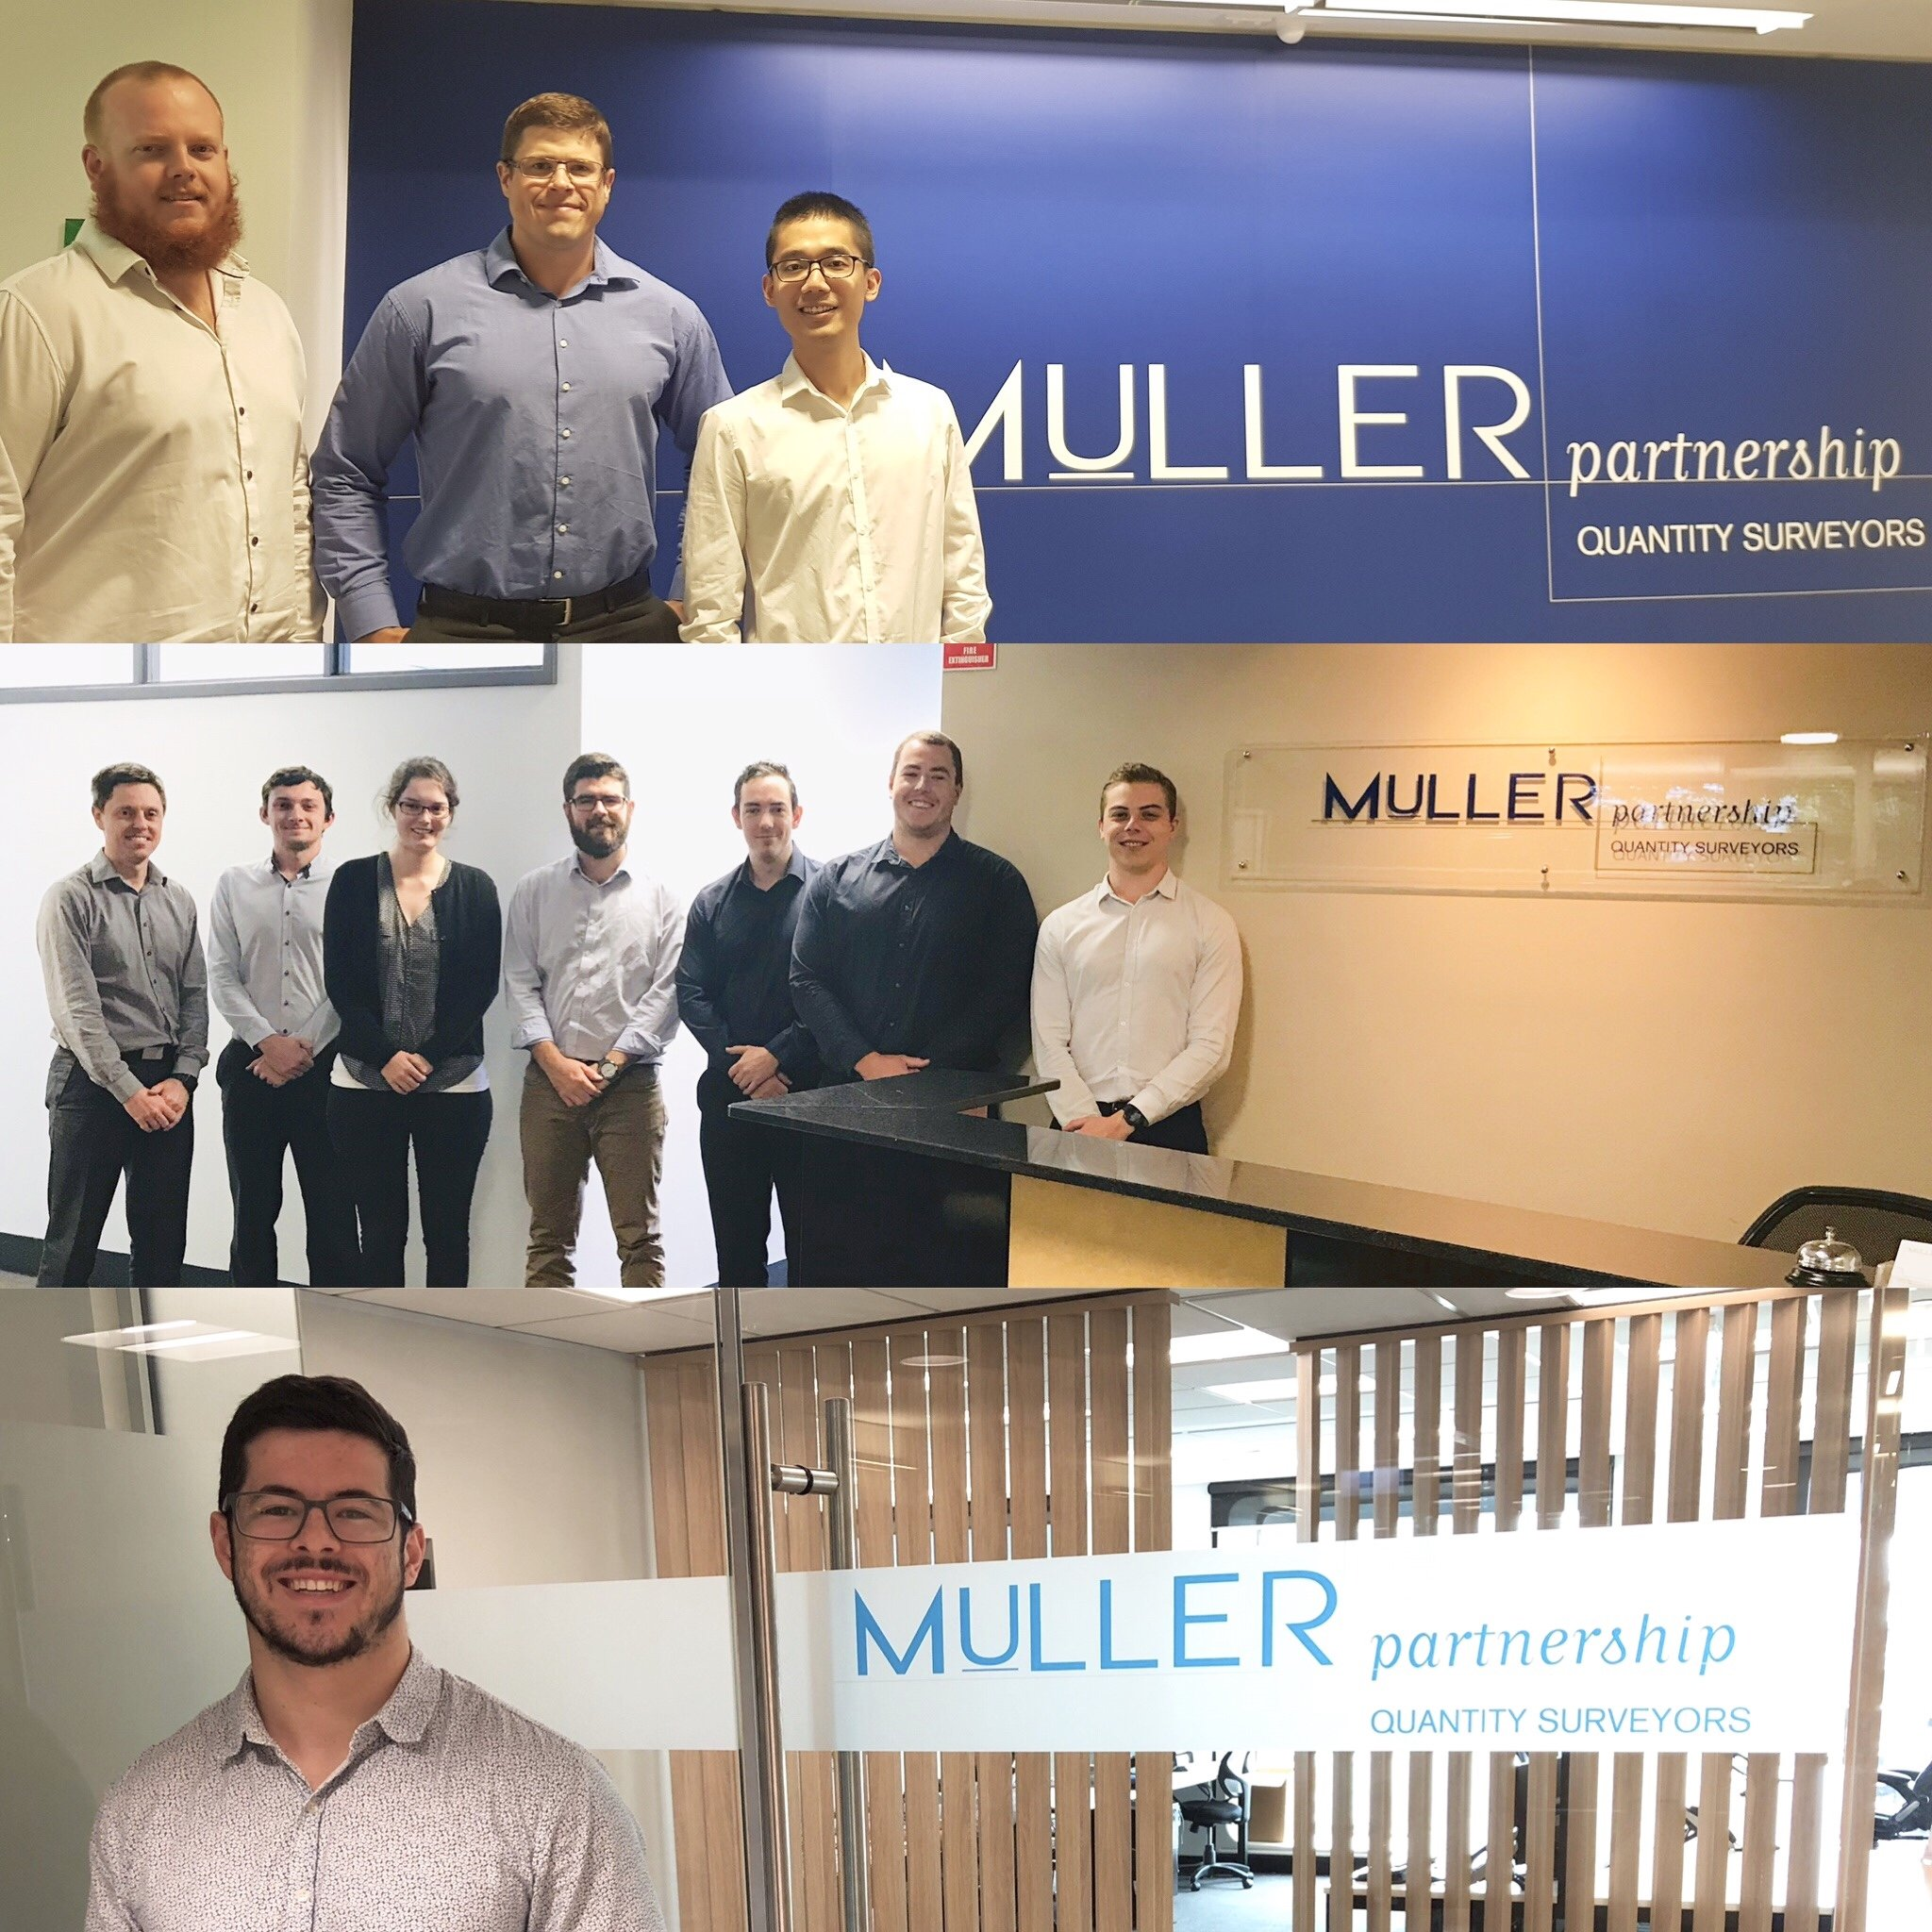 Since its humble beginnings in 1997, Muller Partnership has enjoyed a strong connection with the Construction Management program offered at the University of Newcastle. Under the stewardship of Muller Partnership's Chief Executive Grant Muller, this connection has flourished over 21 years. We currently enjoy an amazing 11 employees whom are either studying or have completed their degree and span across three offices located in Newcastle, Sydney and Melbourne.